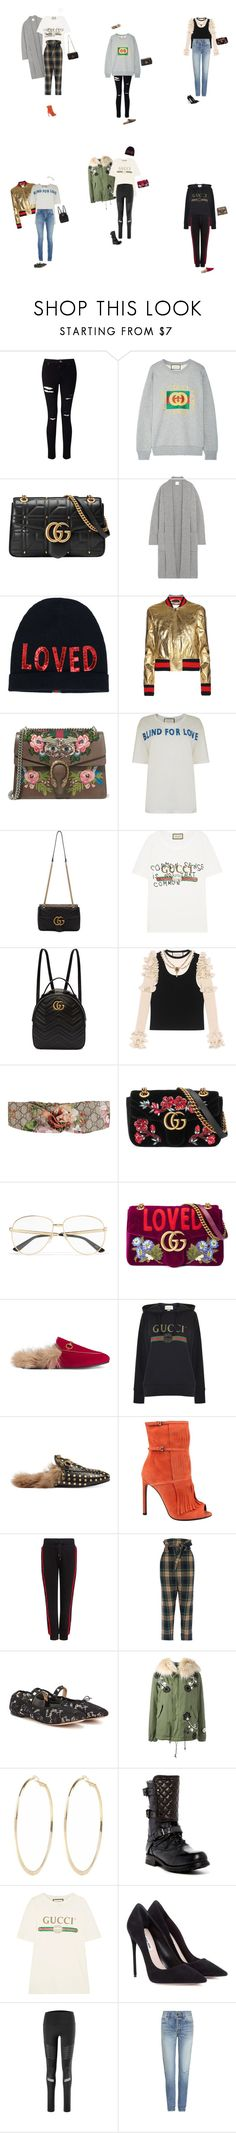 """Fall Gucci Looks!"" by wear2wonder ❤ liked on Polyvore featuring Miss Selfridge, Gucci, Madeleine Thompson, Public School, Vivienne Westwood Anglomania, Valentino, Mr & Mrs Italy, River Island, UGG and Miu Miu"